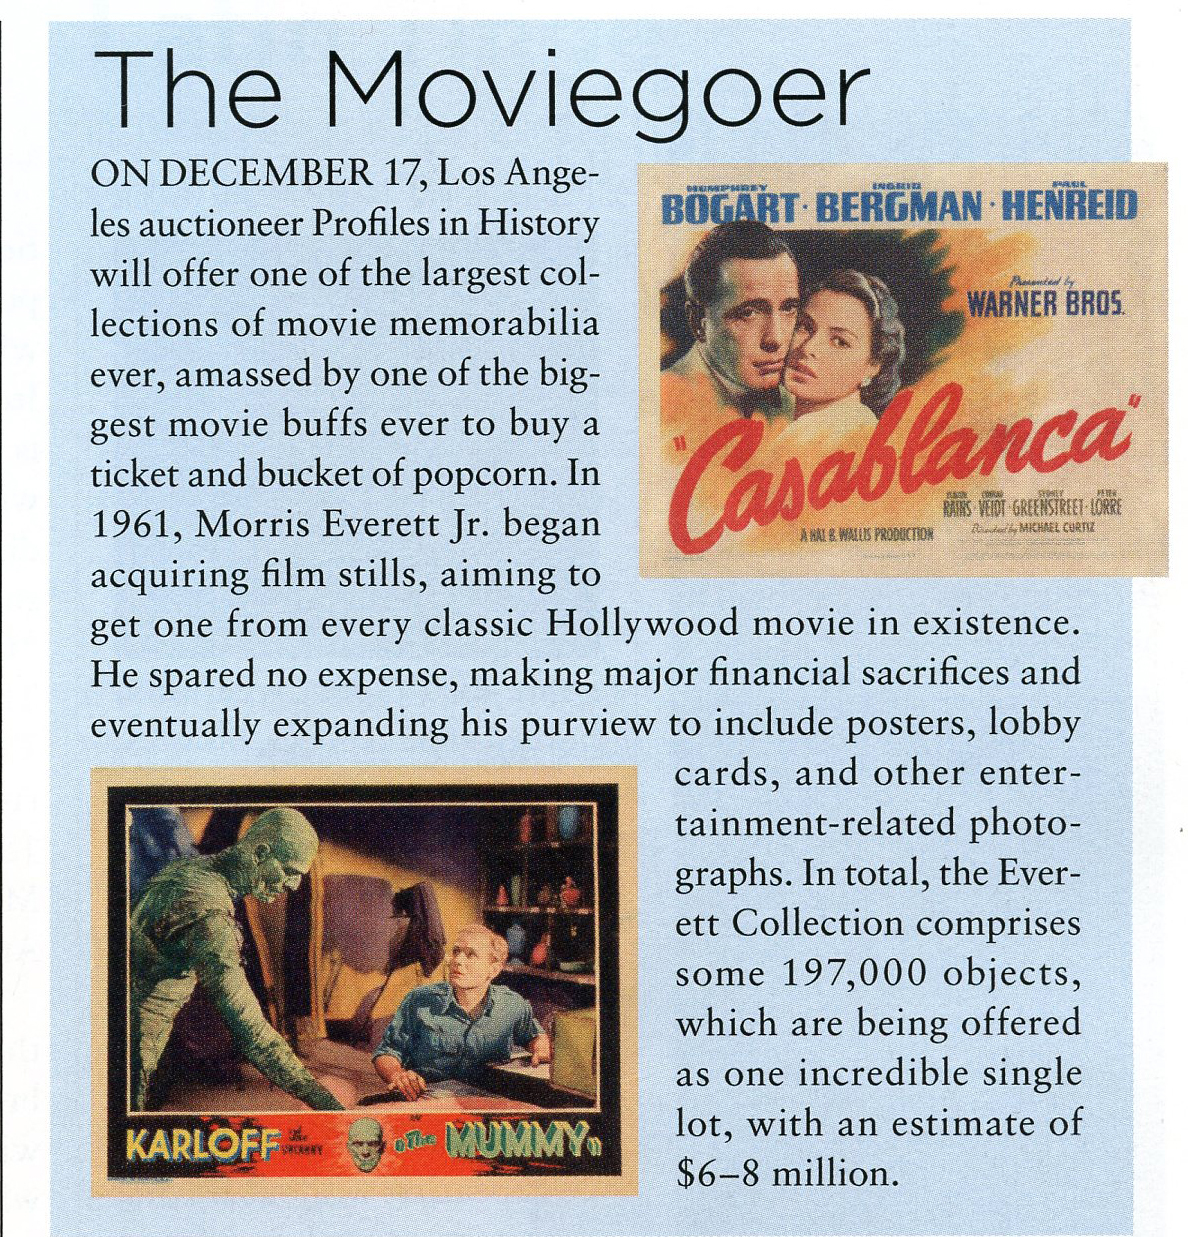 art antique article about the moviegoer, two photos of old casablanca poster and karloff the mummy poster